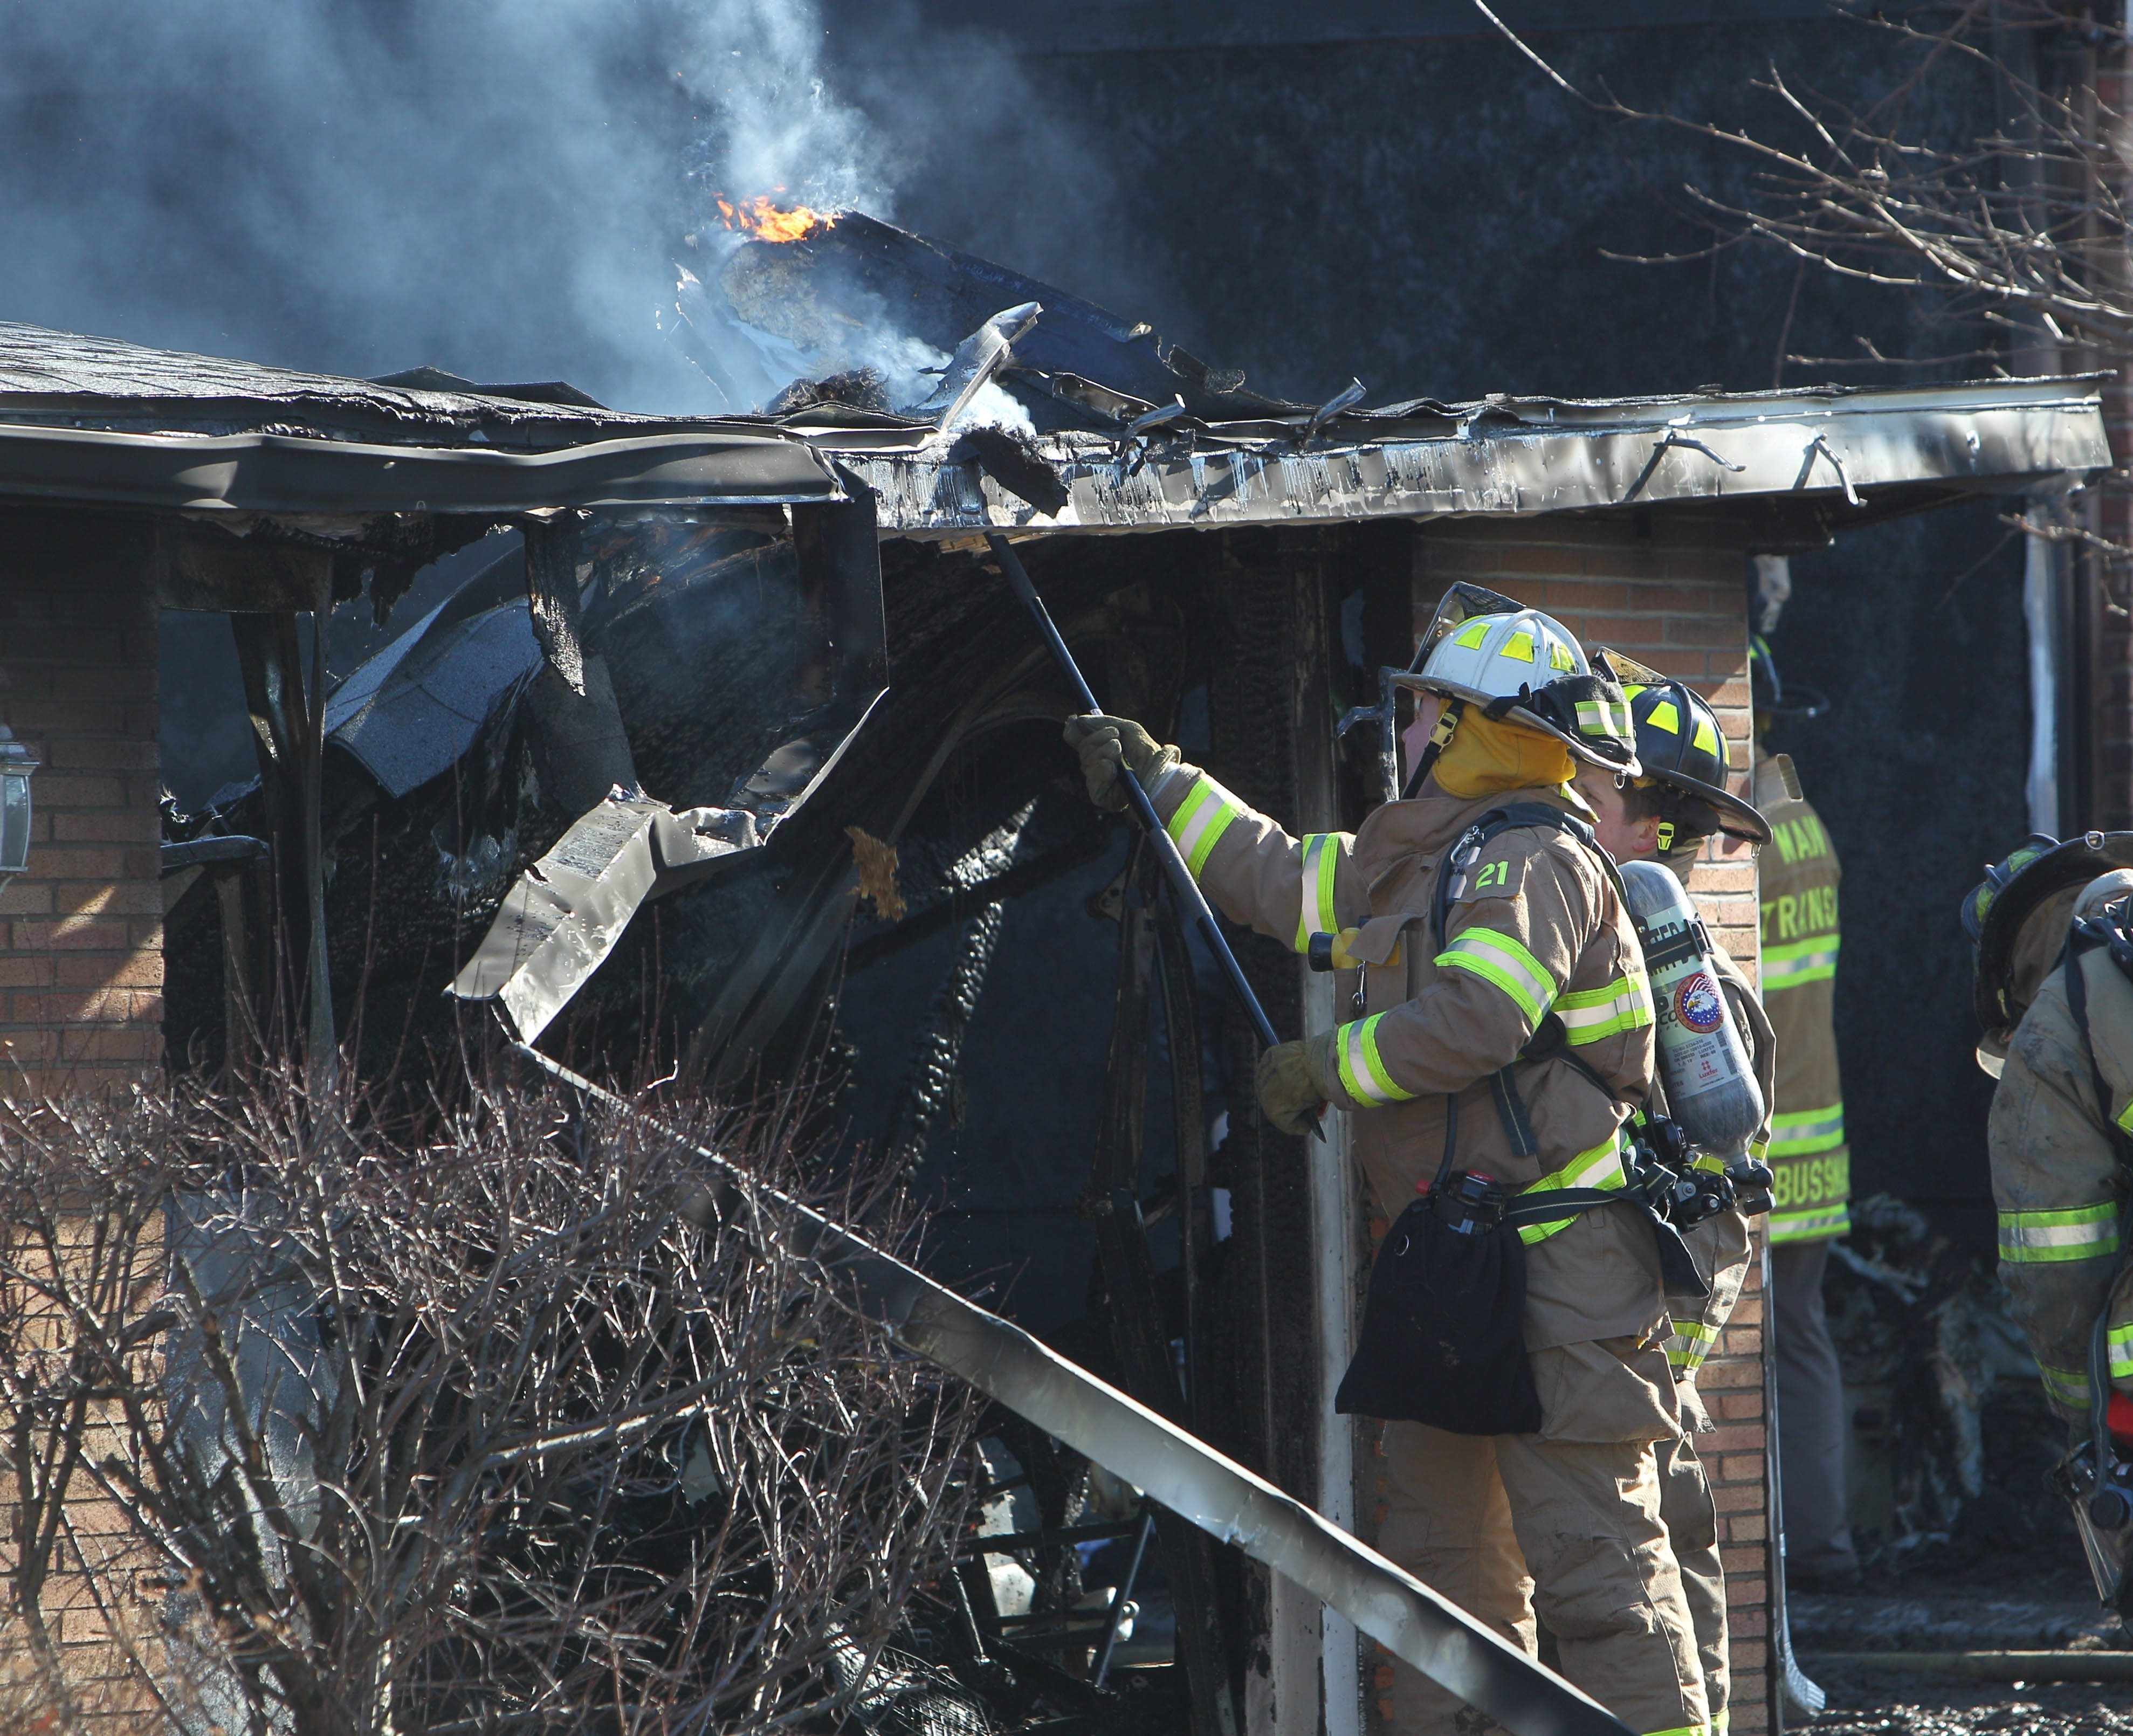 Main Transit Fire Company was the first on the scene of a fire on Berkley Road, between Wehrle Drive and Main Street in Amherst.